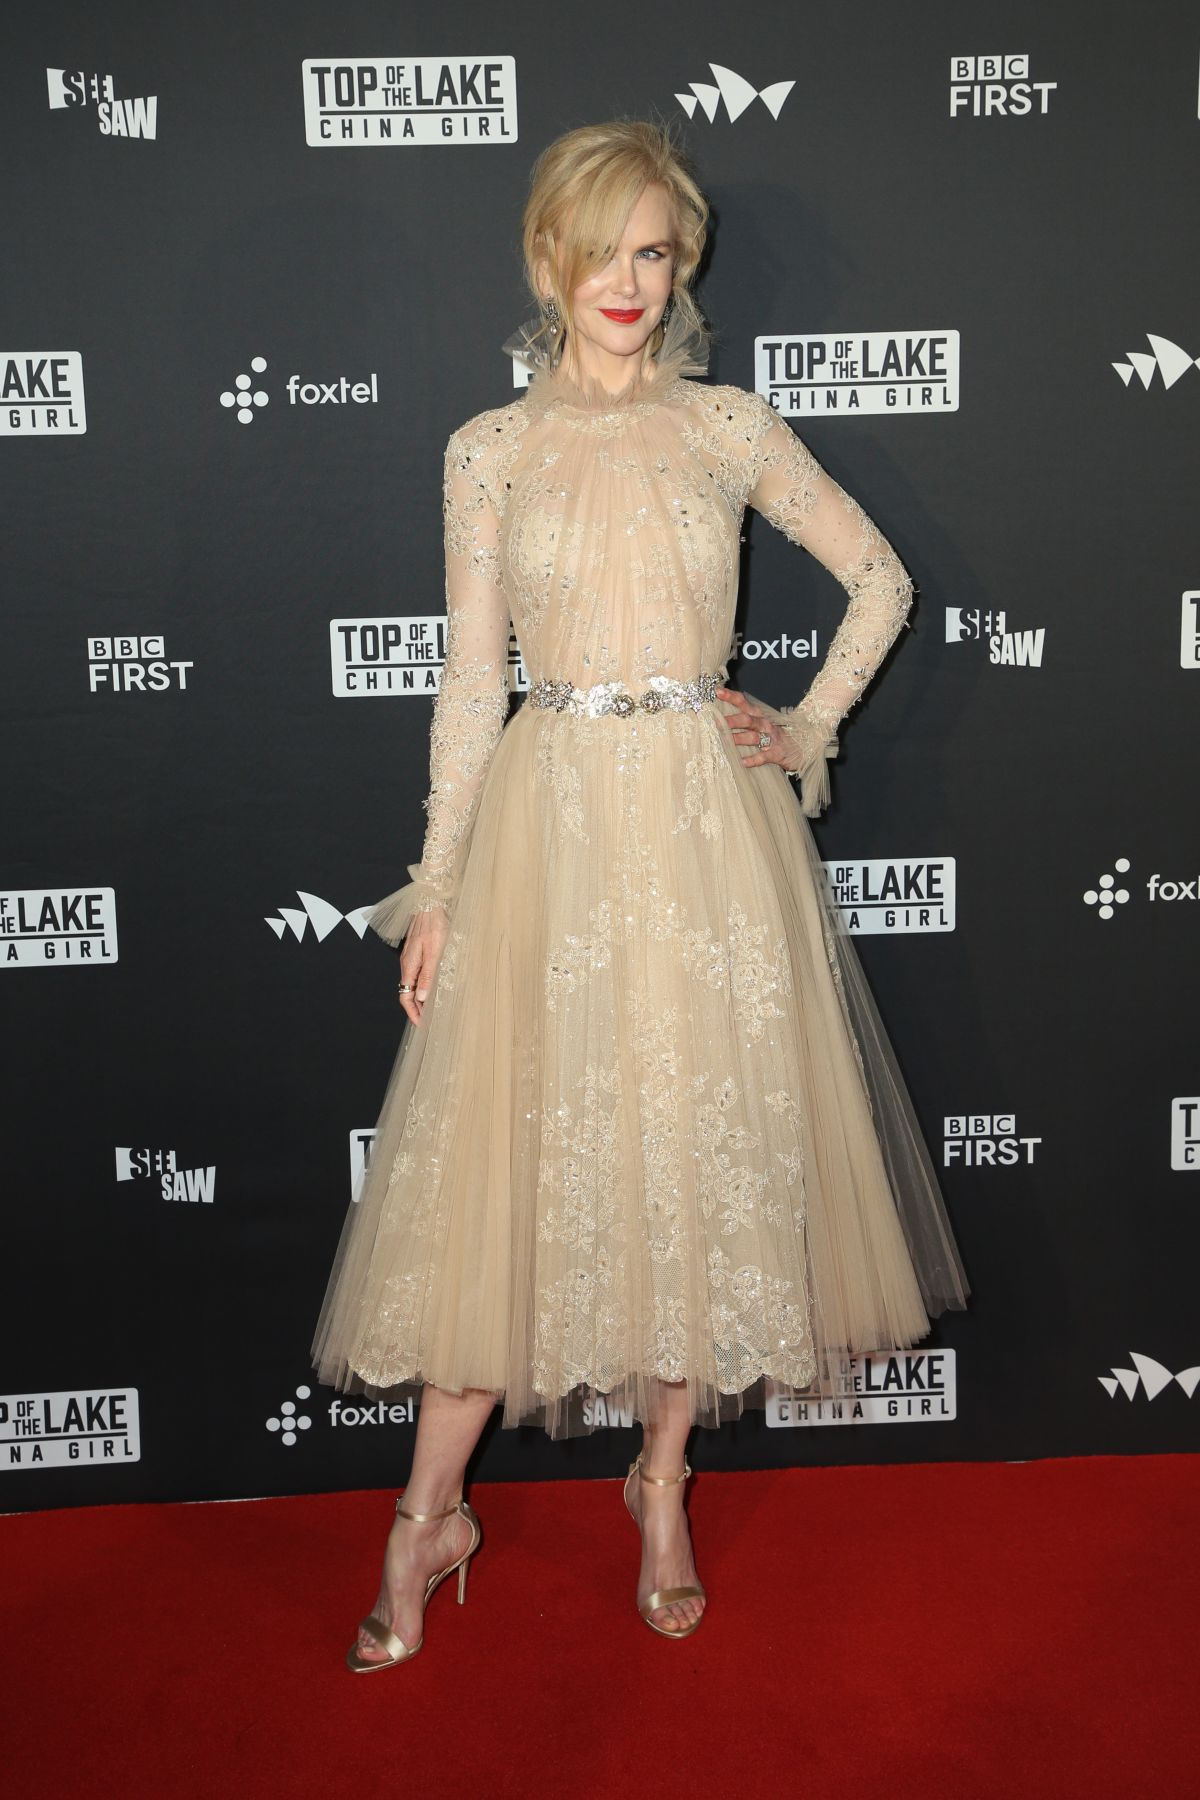 nicole-kidman-at-top-of-the-lake-china-girl-premiere-in-sydney-08-01-2017_1.jpg